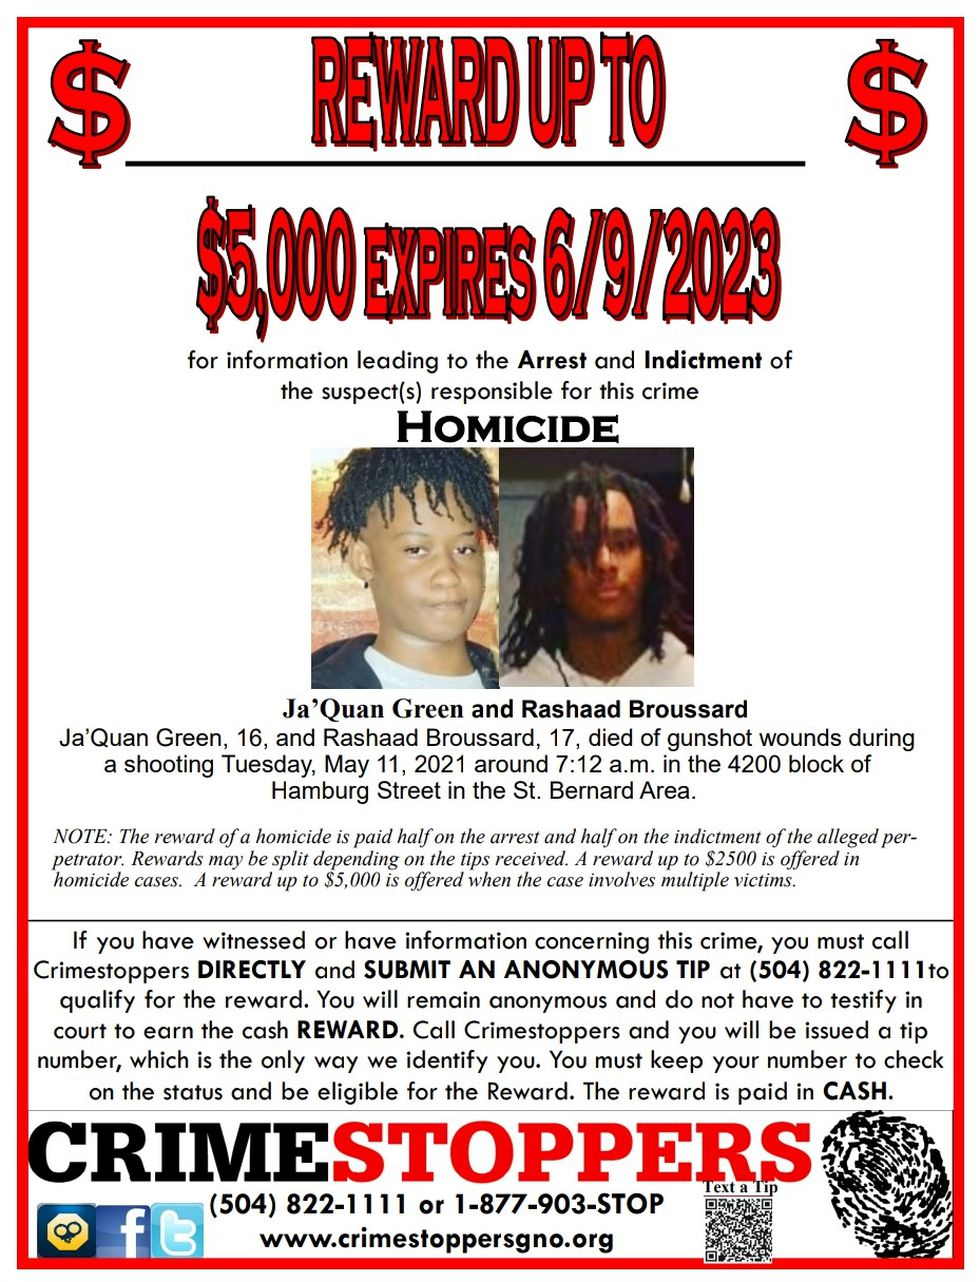 A $5,000 reward has been offered for information leading to the arrest of the suspect(s)...